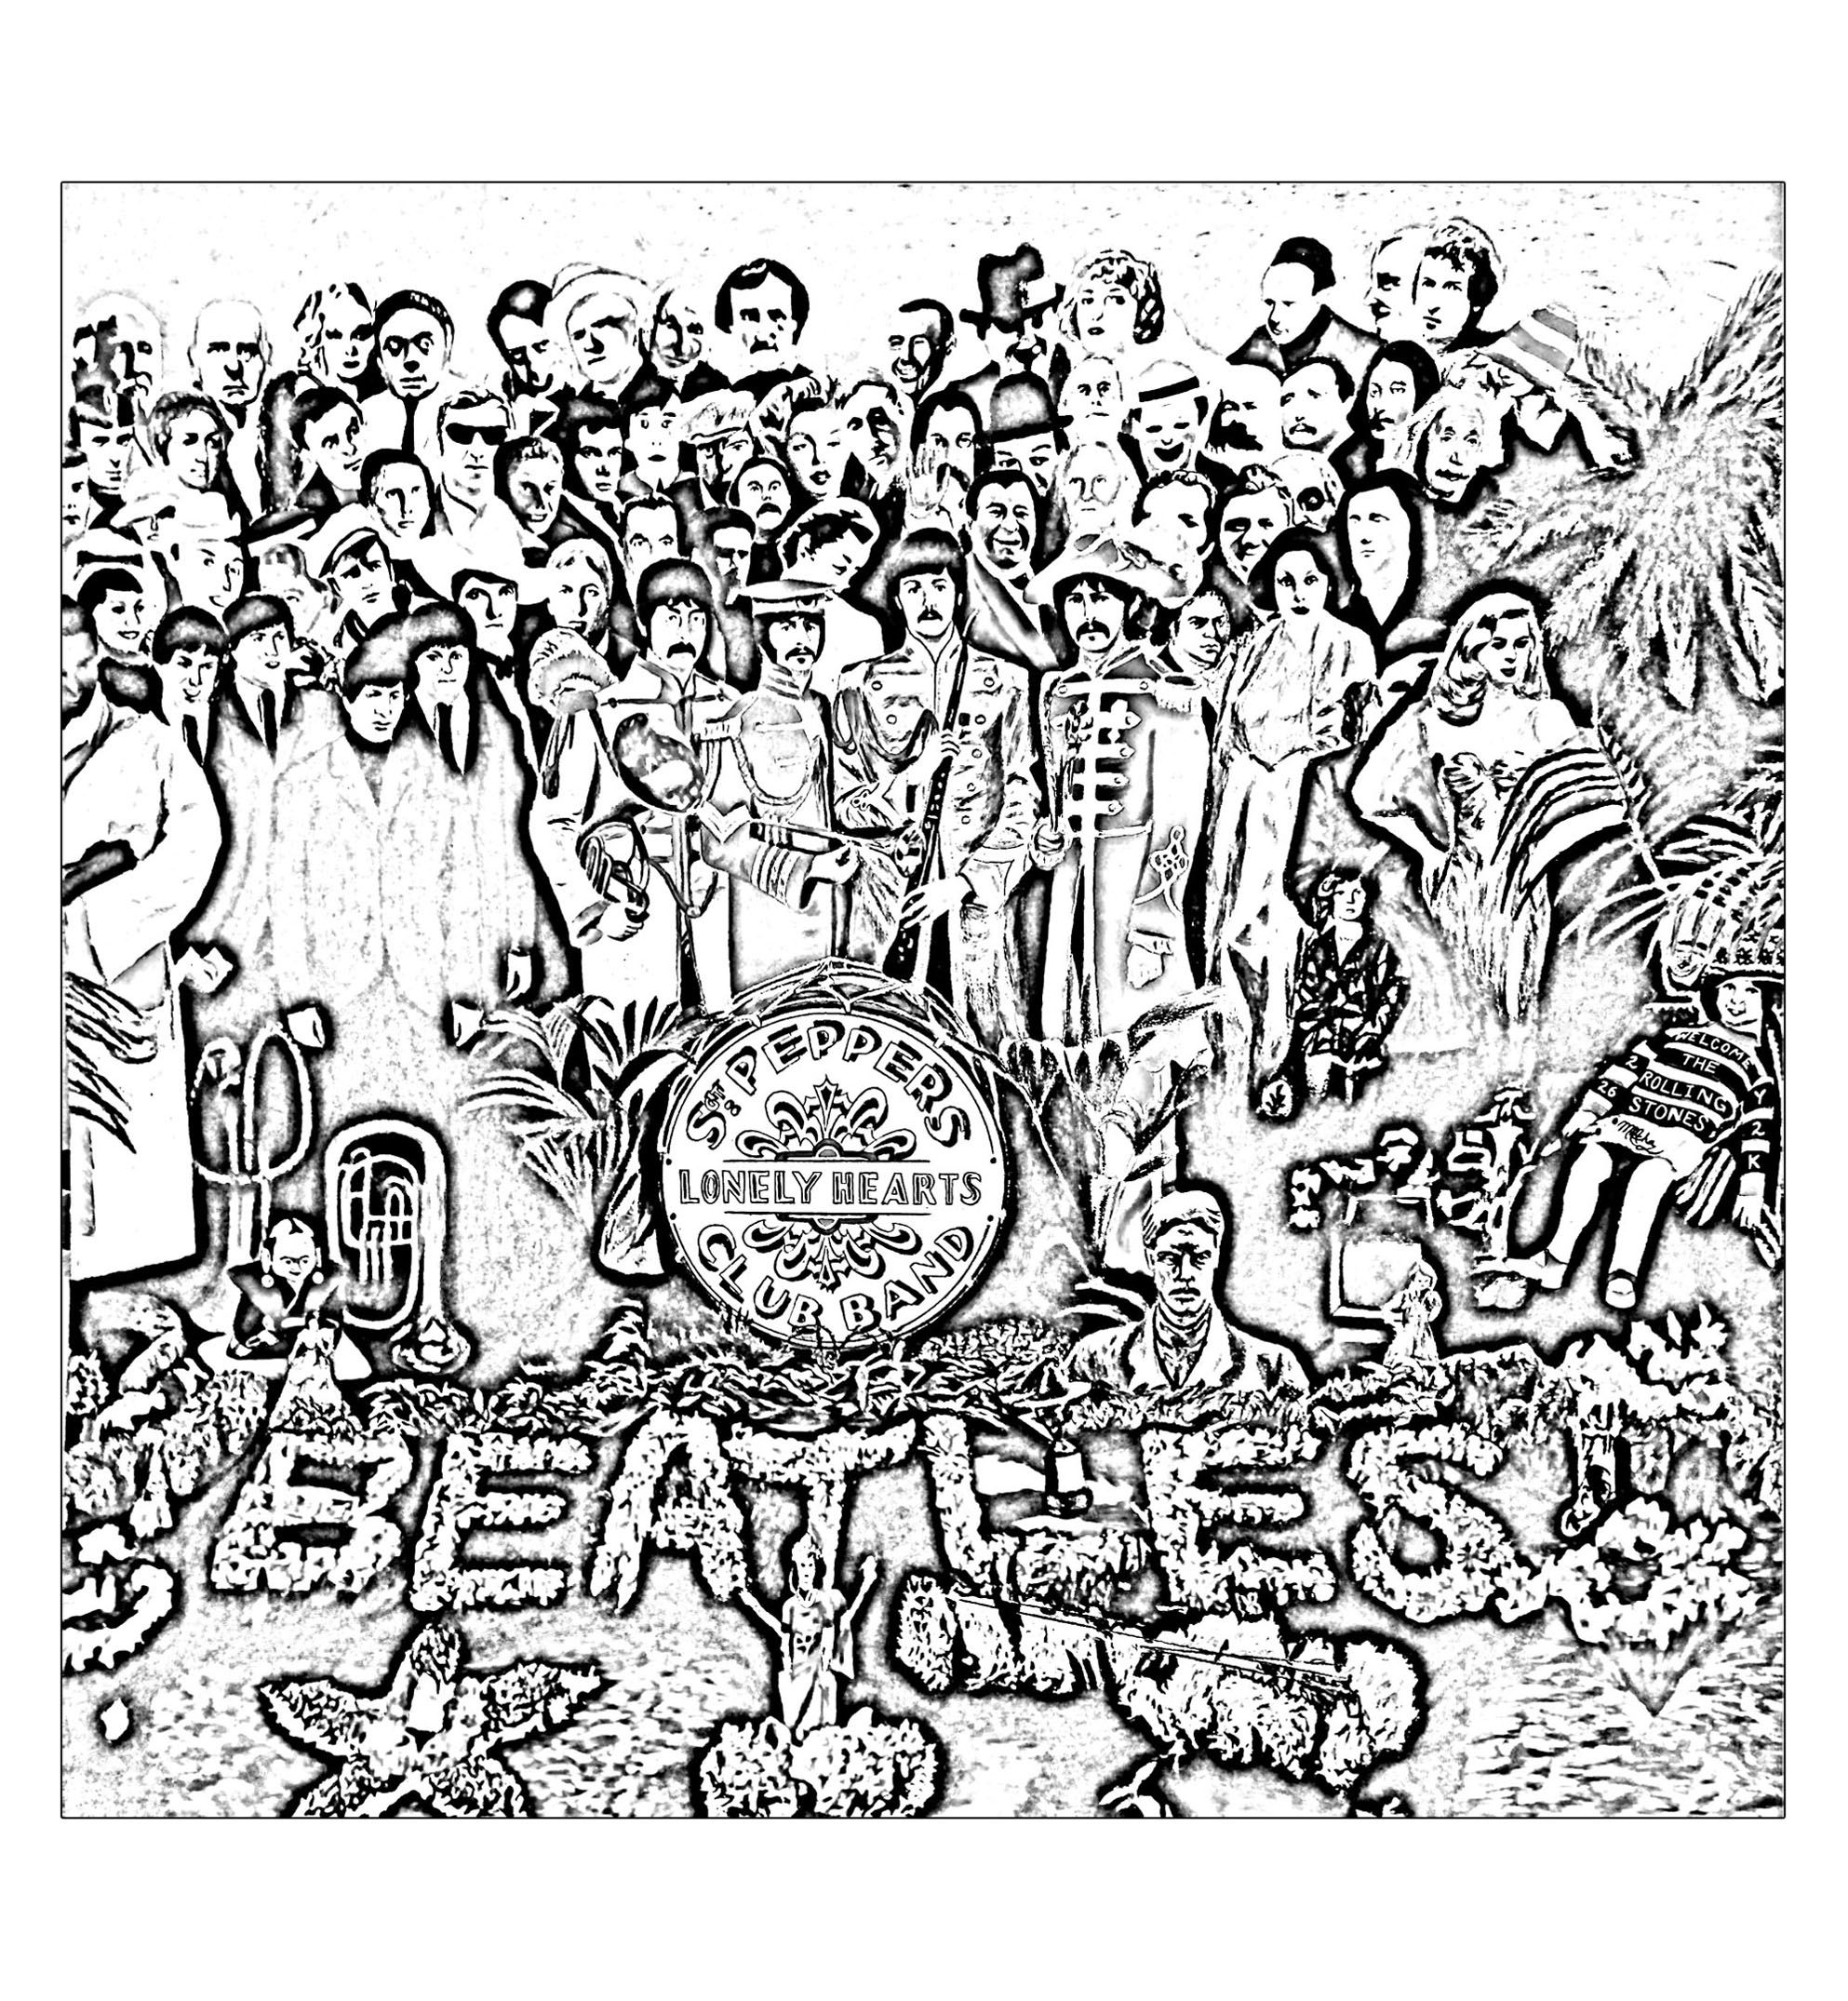 An Adult Coloring Page Inspired By The Beatles Album Sgt Peppers Lonely Hearts Club Band